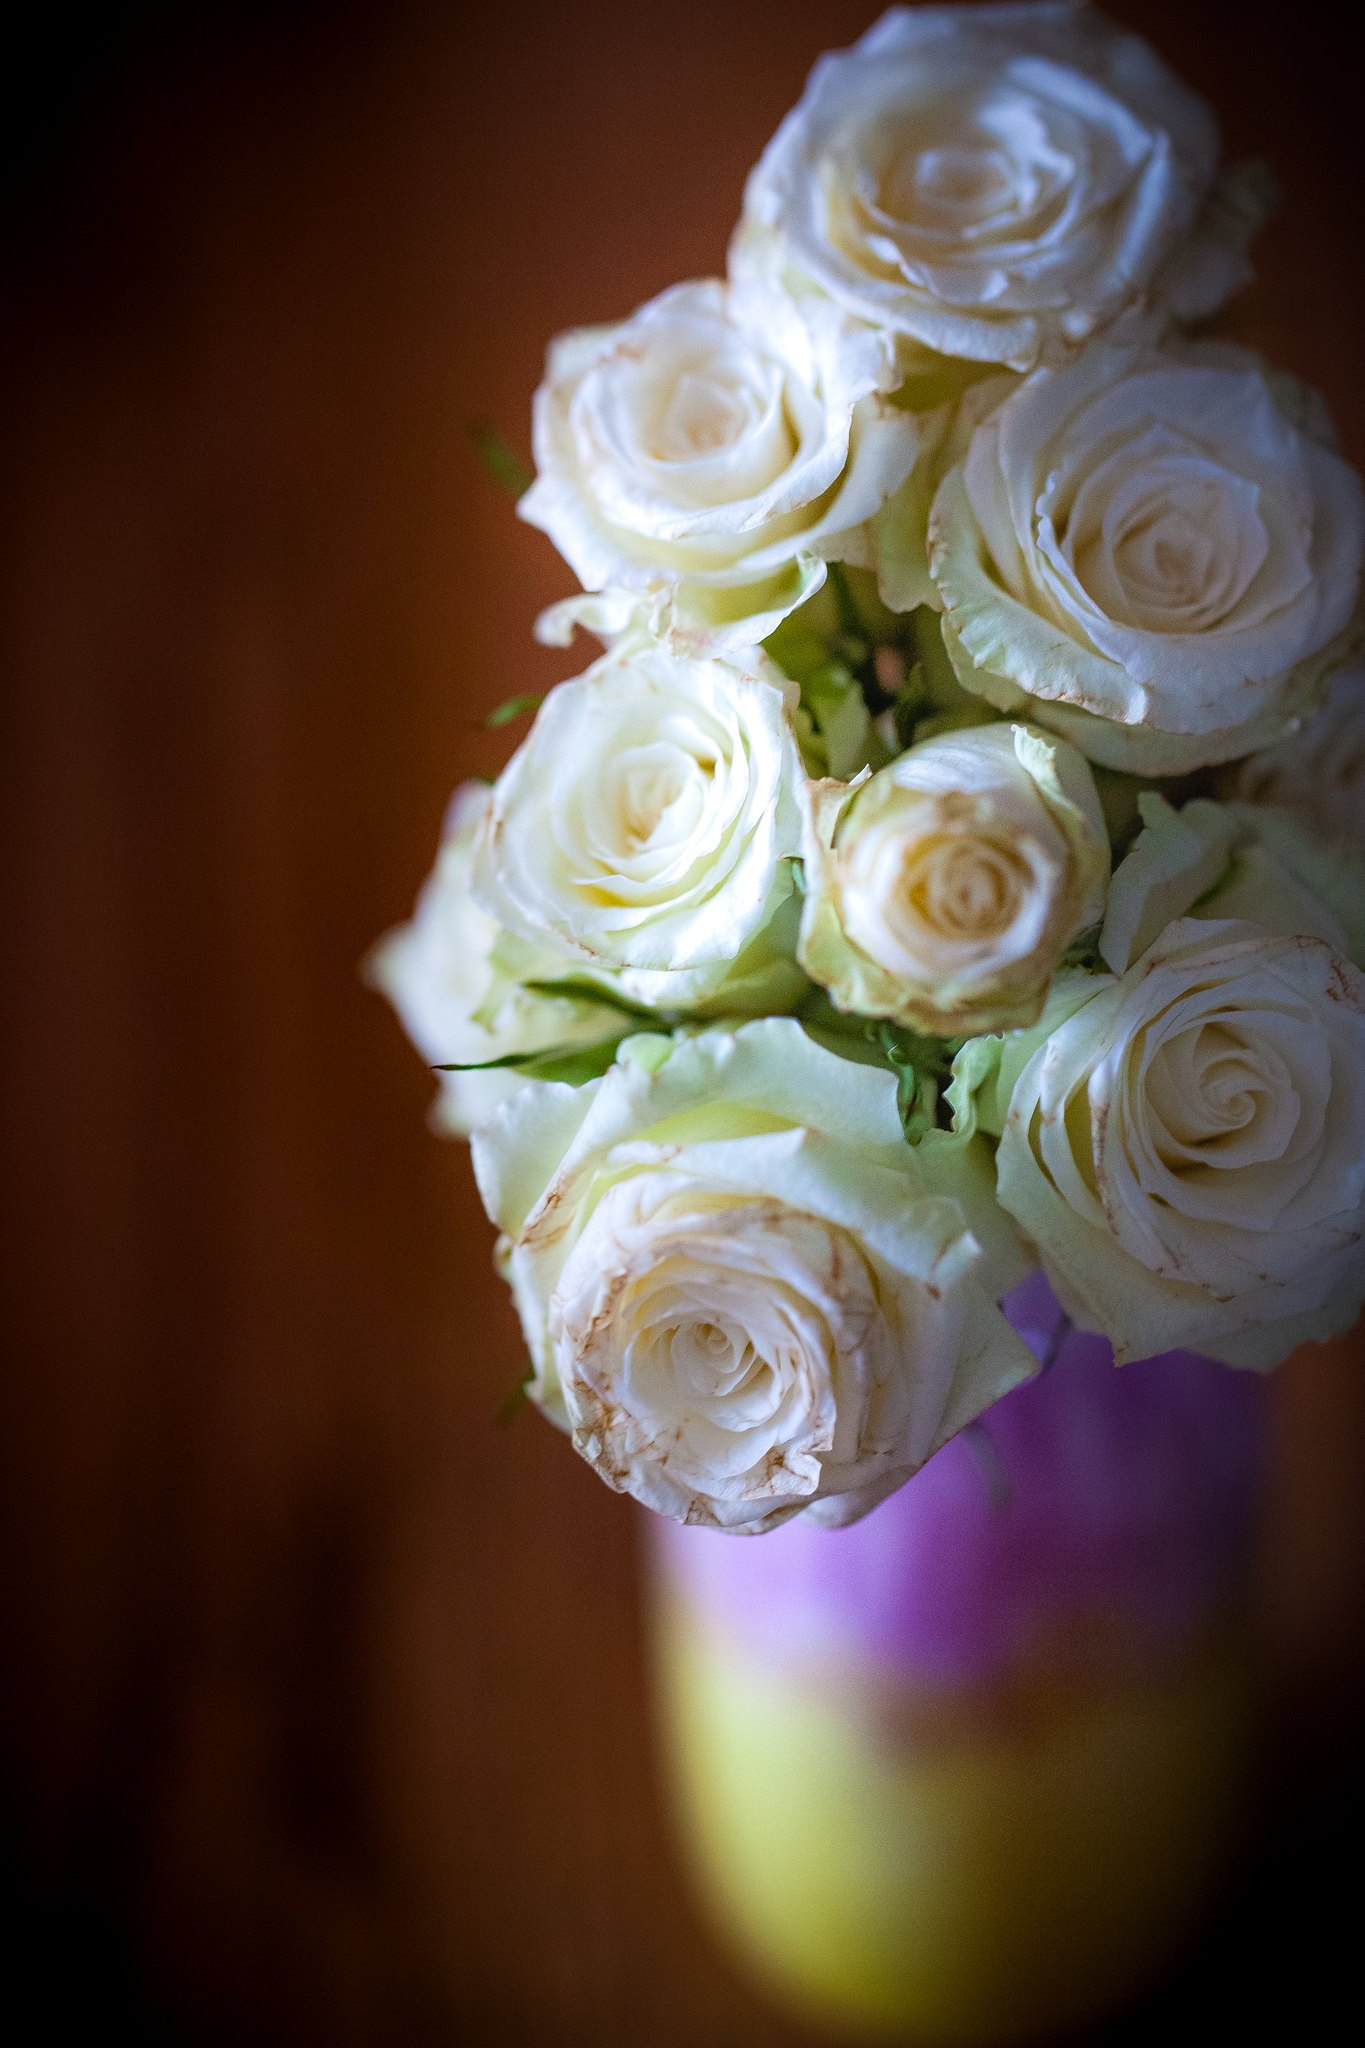 (366/366) New Year's Roses